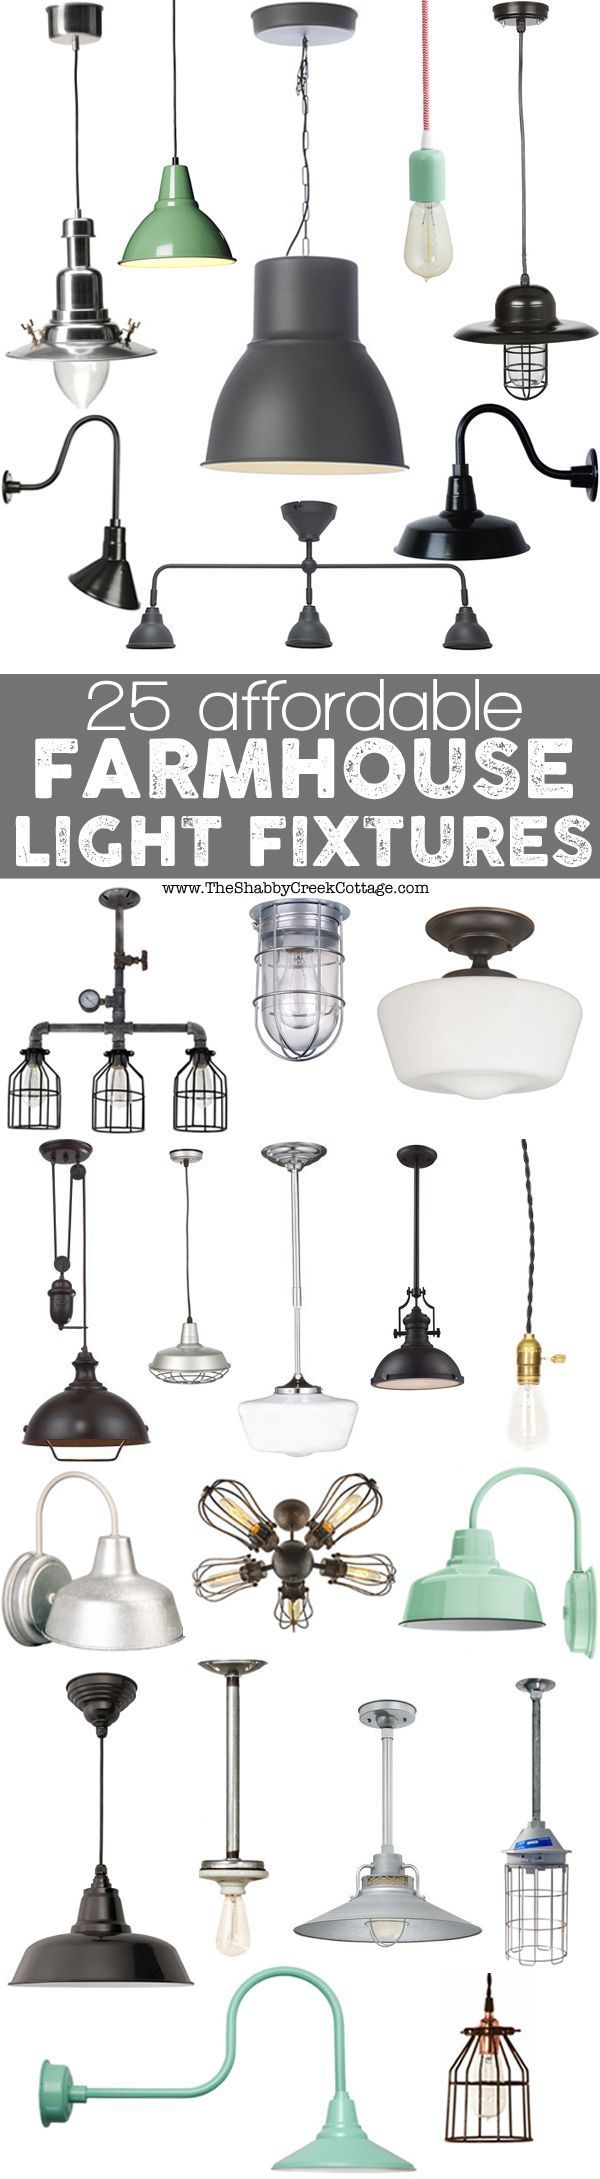 old fashioned lighting fixtures. Farmhouse Lighting Ideas - 25 Affordable Fixtures That Look Like Authentic Vintage Via The Shabby Creek Cottage Old Fashioned T